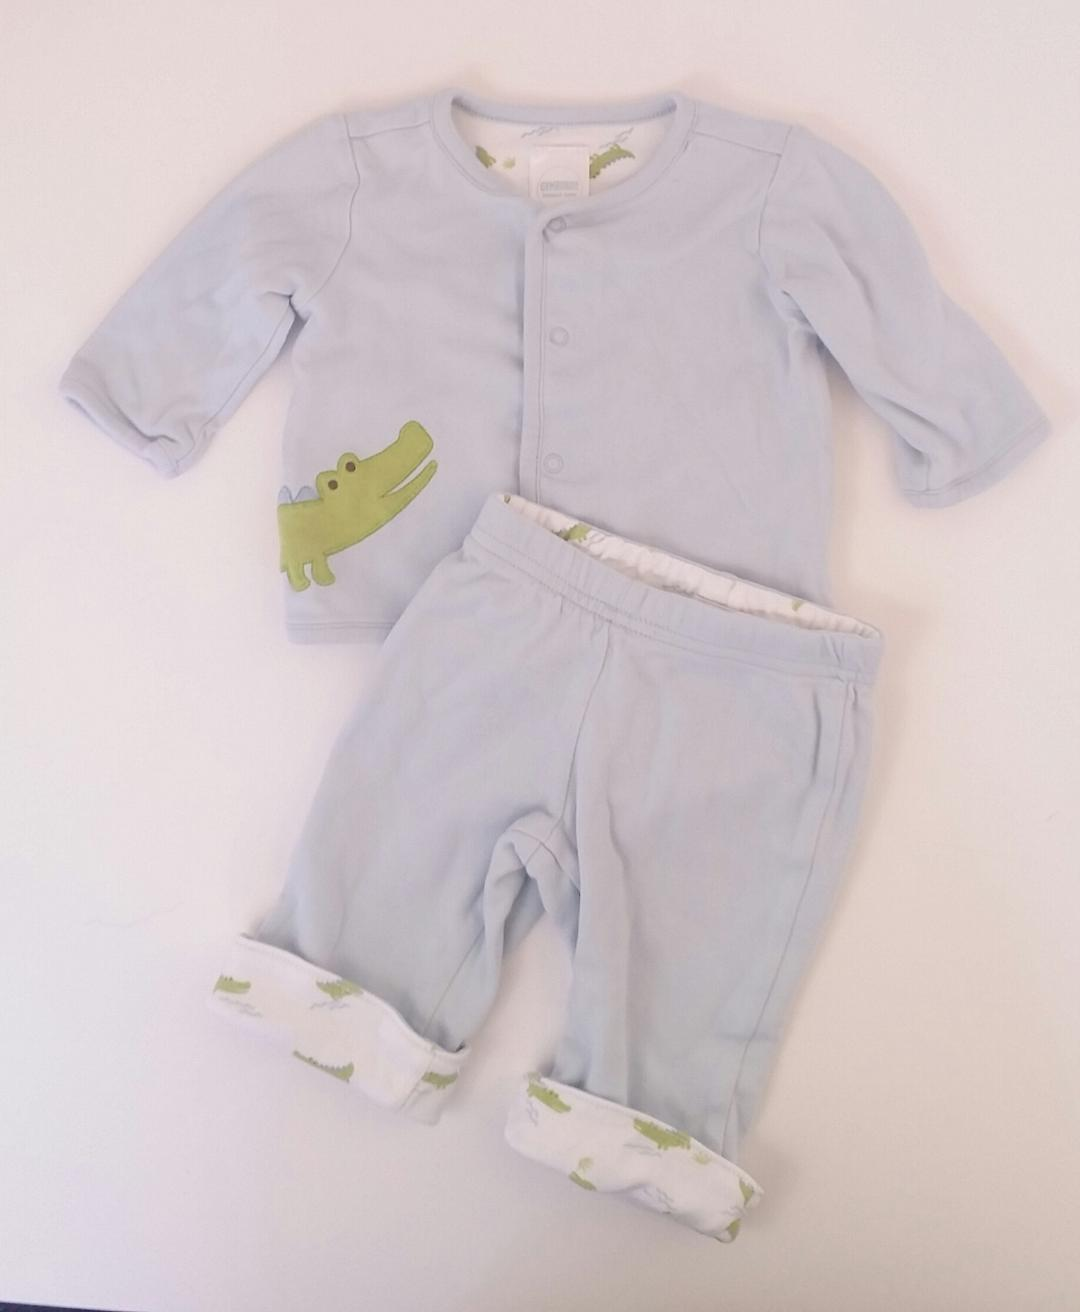 Gymboree-0-3-MONTHS-3-Piece-Outfit_2133666A.jpg